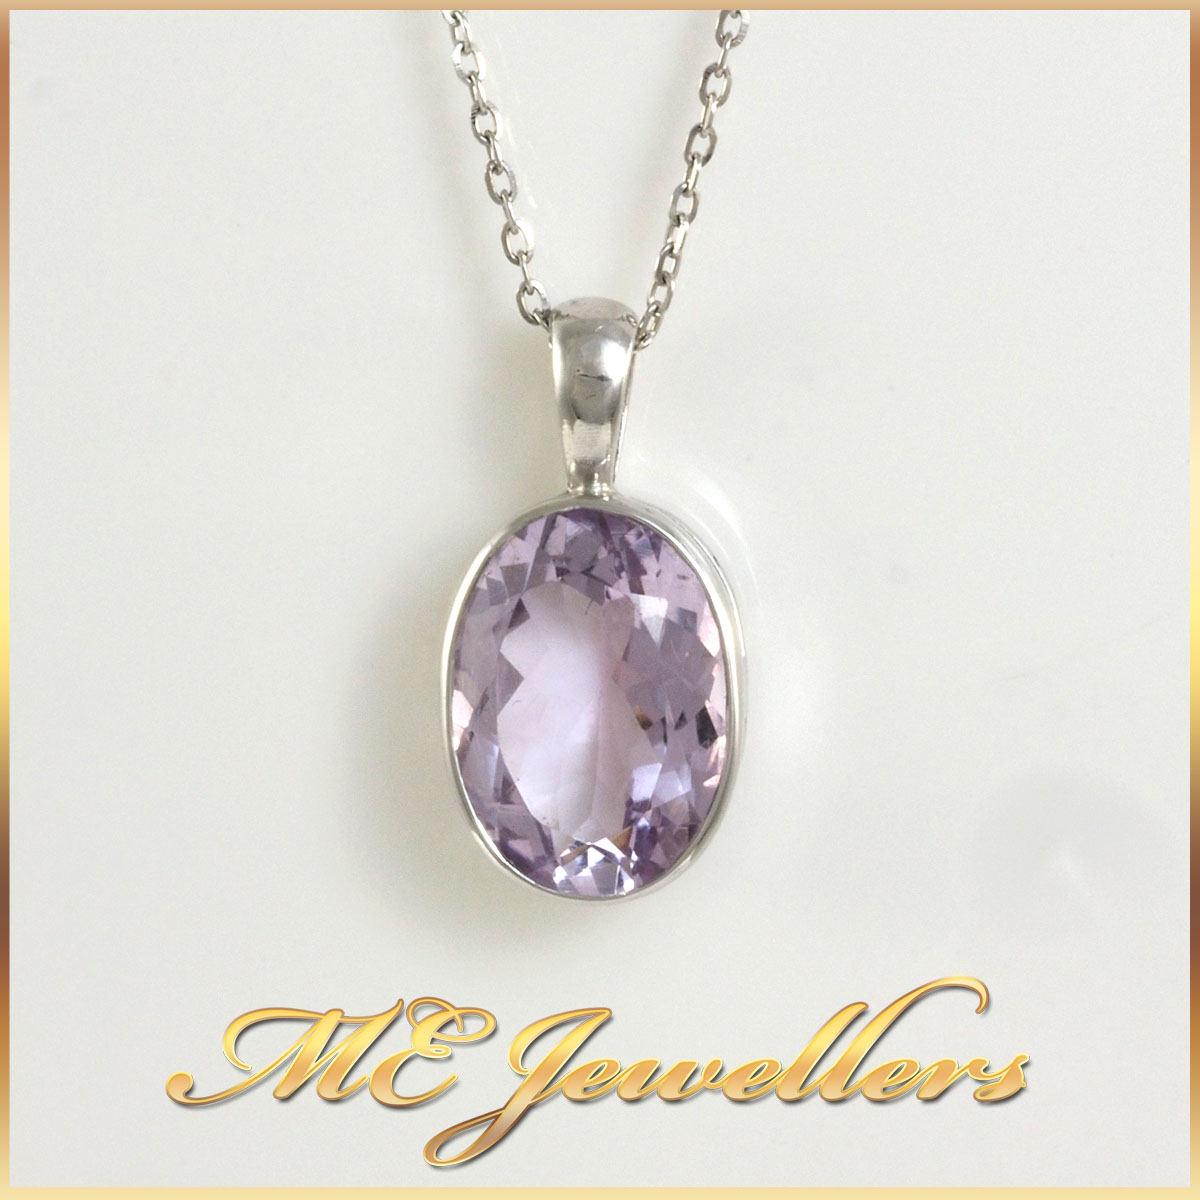 Amethyst Pendant and Chain